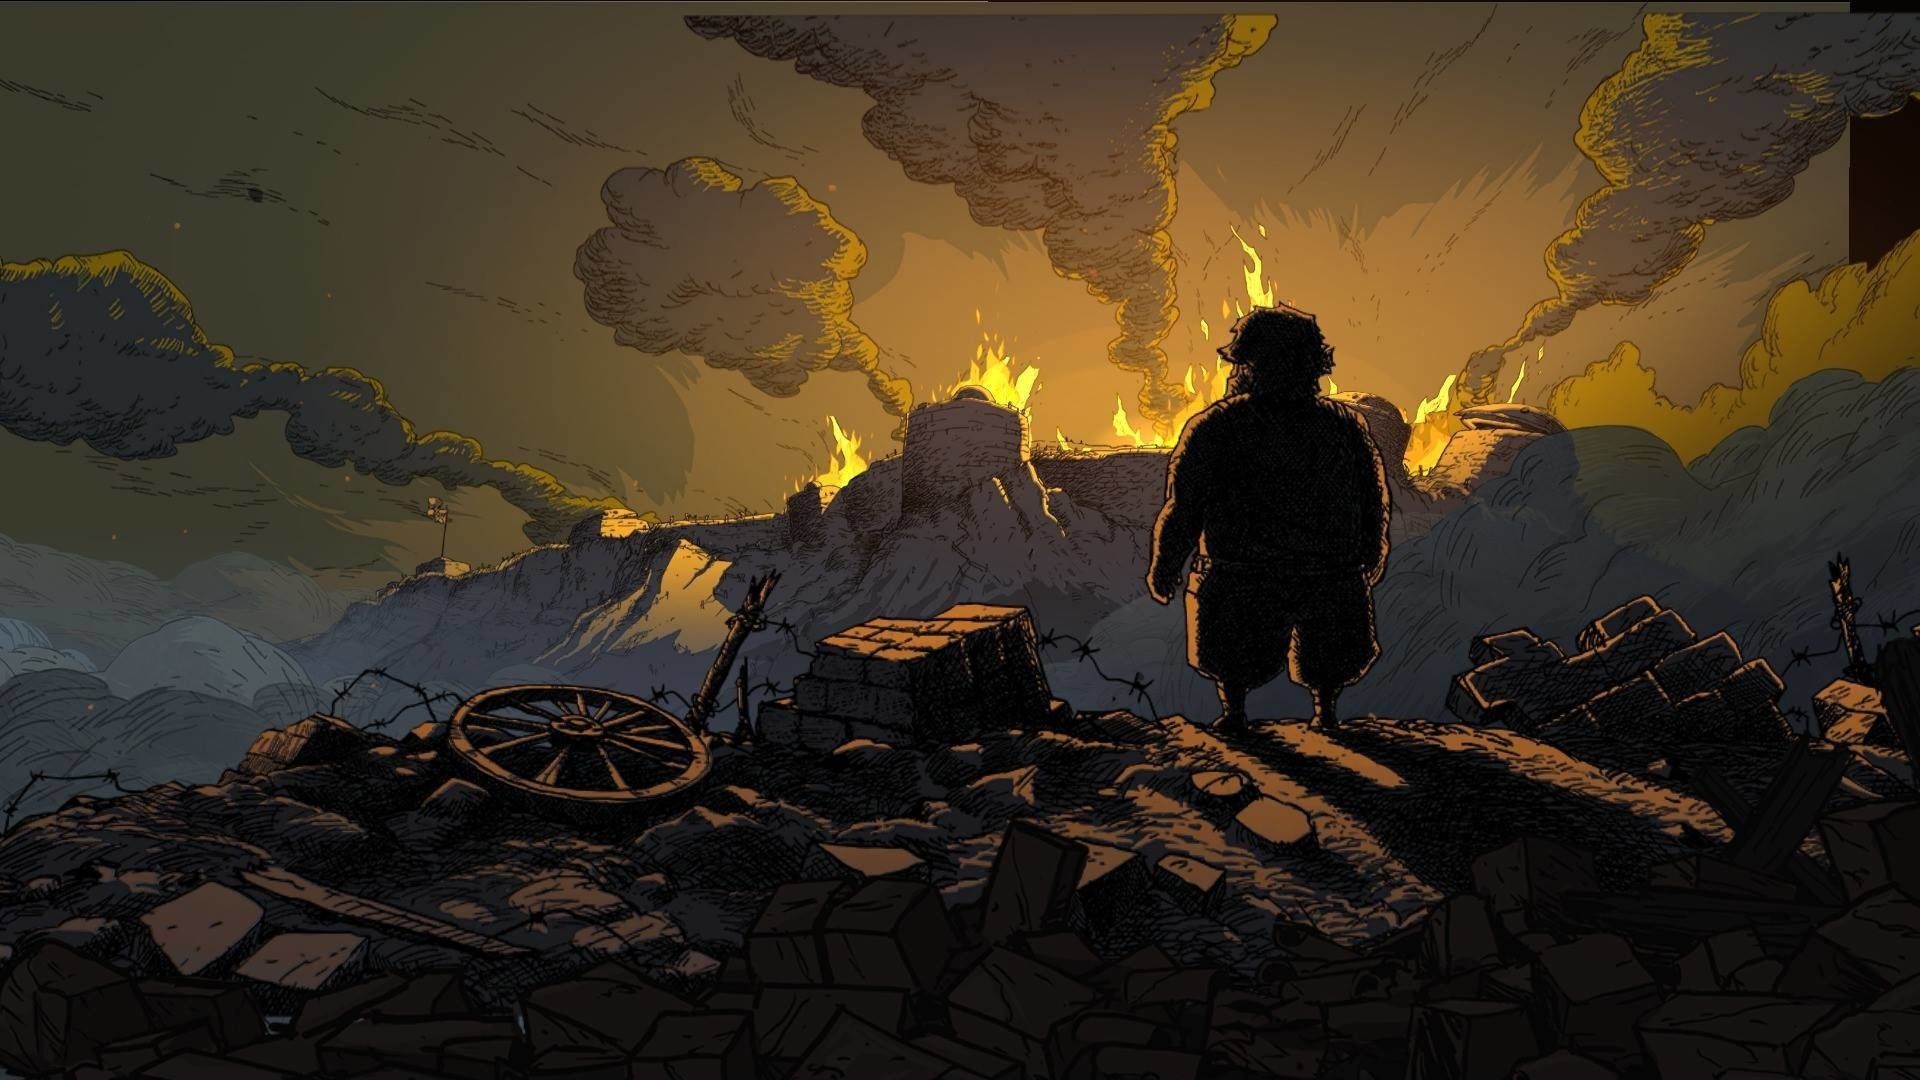 valiant hearts: the great war full hd wallpaper and background image